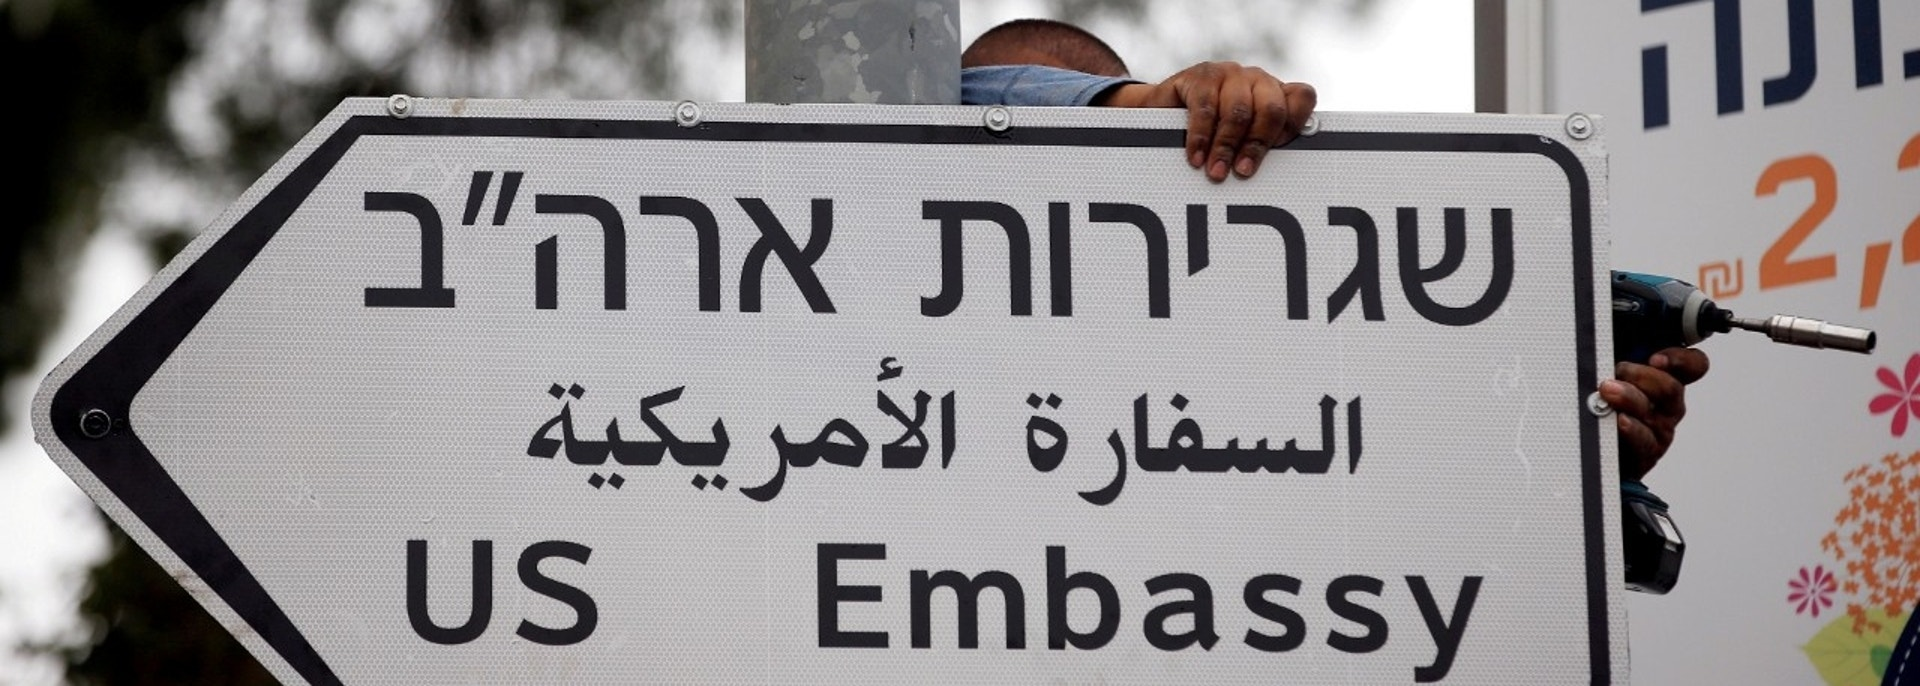 FILE PHOTO: A worker hangs a road sign directing to the U.S. embassy, in the area of the U.S. consulate in Jerusalem, May 7, 2018. REUTERS/Ronen Zvulun/File Photo - RC144B4FBA30